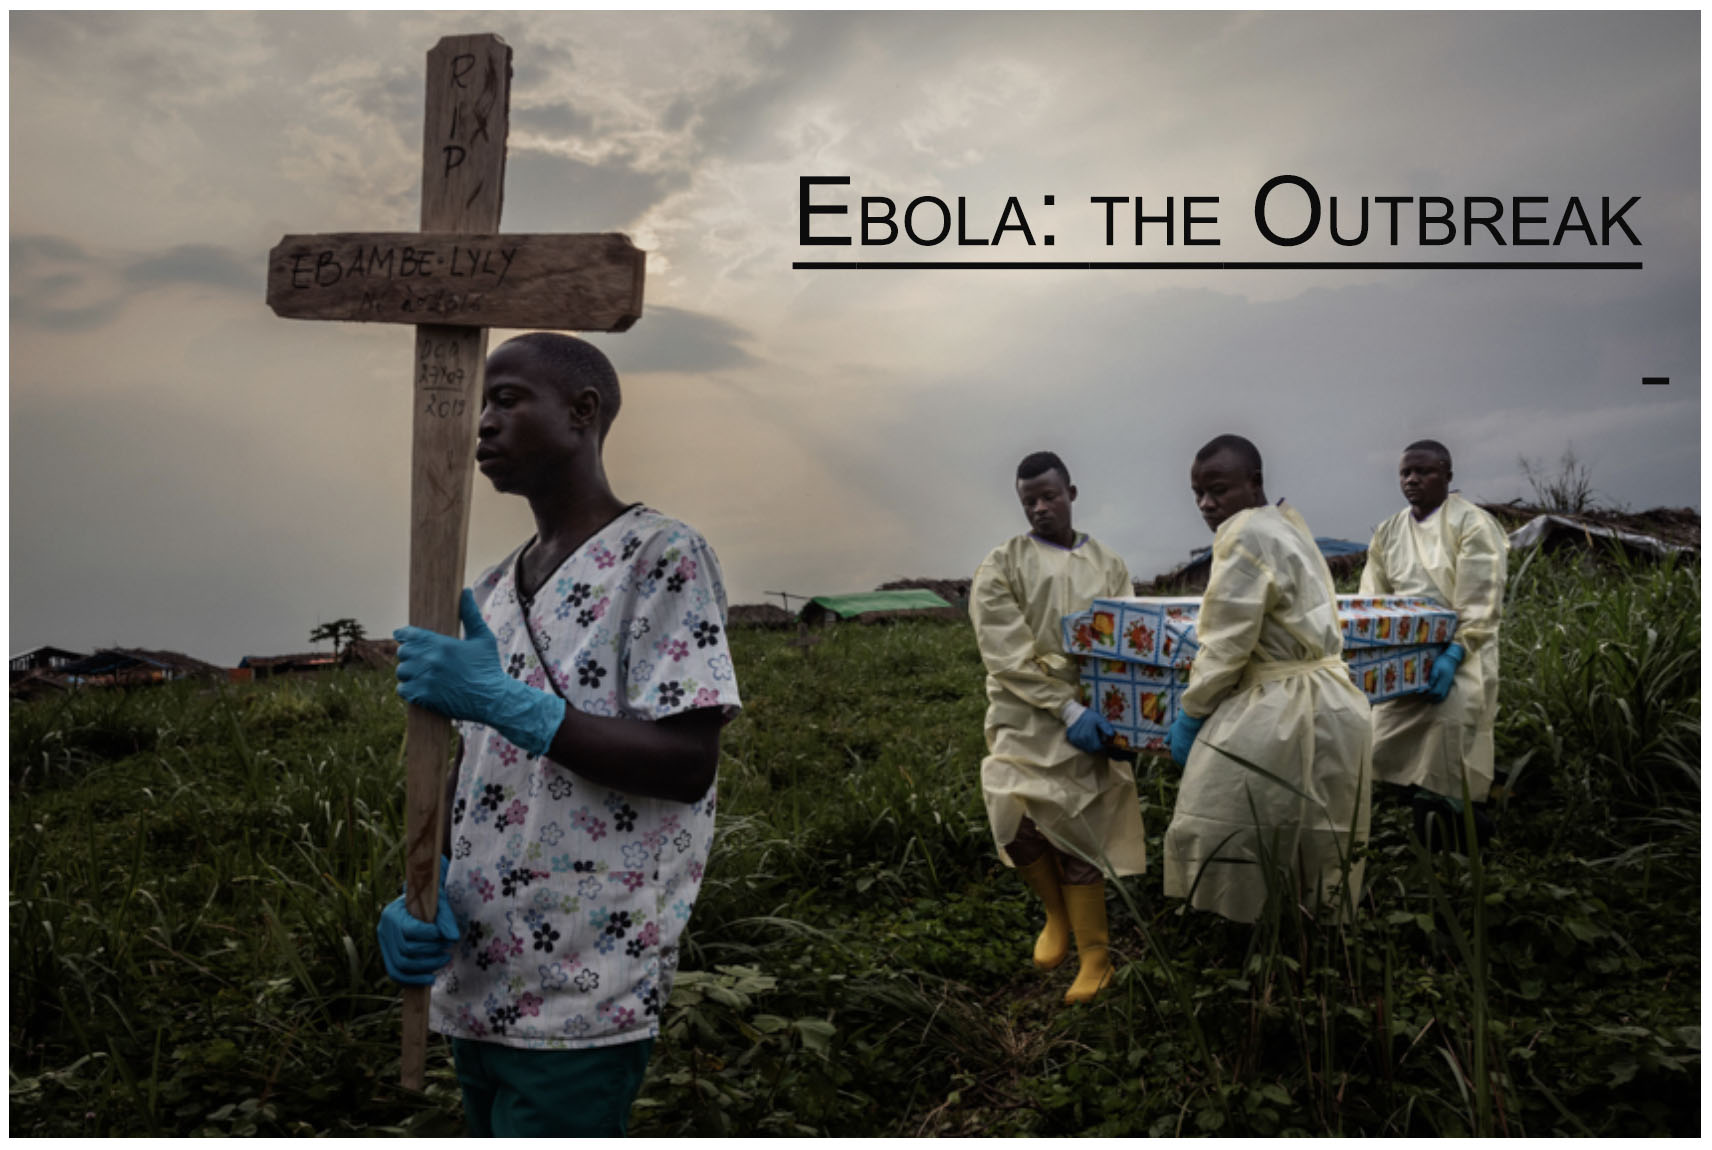 Ebola, The Outbreak is the dramatic story of what is happening in the north-east of the Democratic Republic of Congo, where an Ebola epidemic (the most lethal in history) is underway, the first in a context of war. The numbers are impressive: over 3100 infections and 2,000 deaths. 30% of those who contract the virus are under 18 years of age and the deaths are of mostly children. An endless slaughter of the innocents.